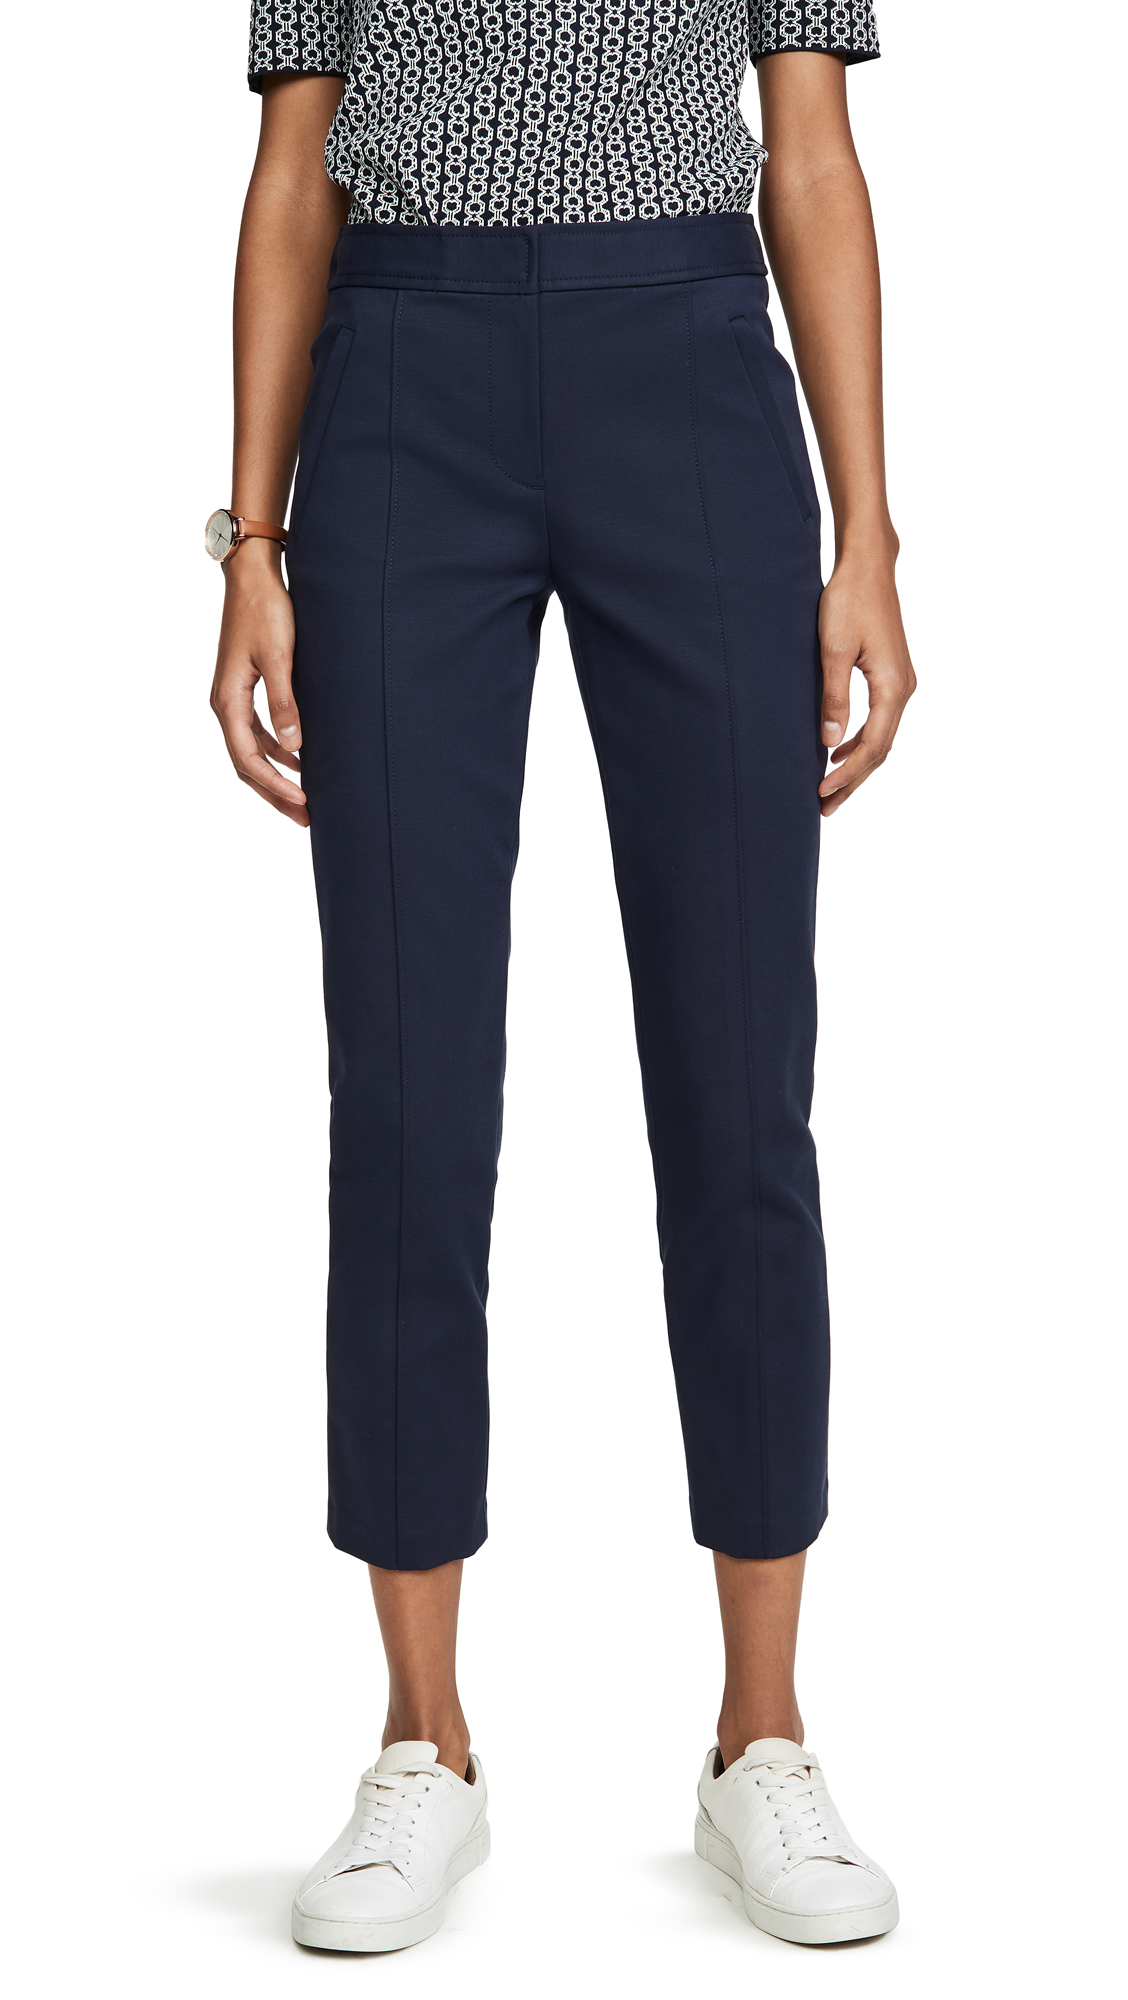 Tory Burch Vanner Cropped Pants In Tory Navy